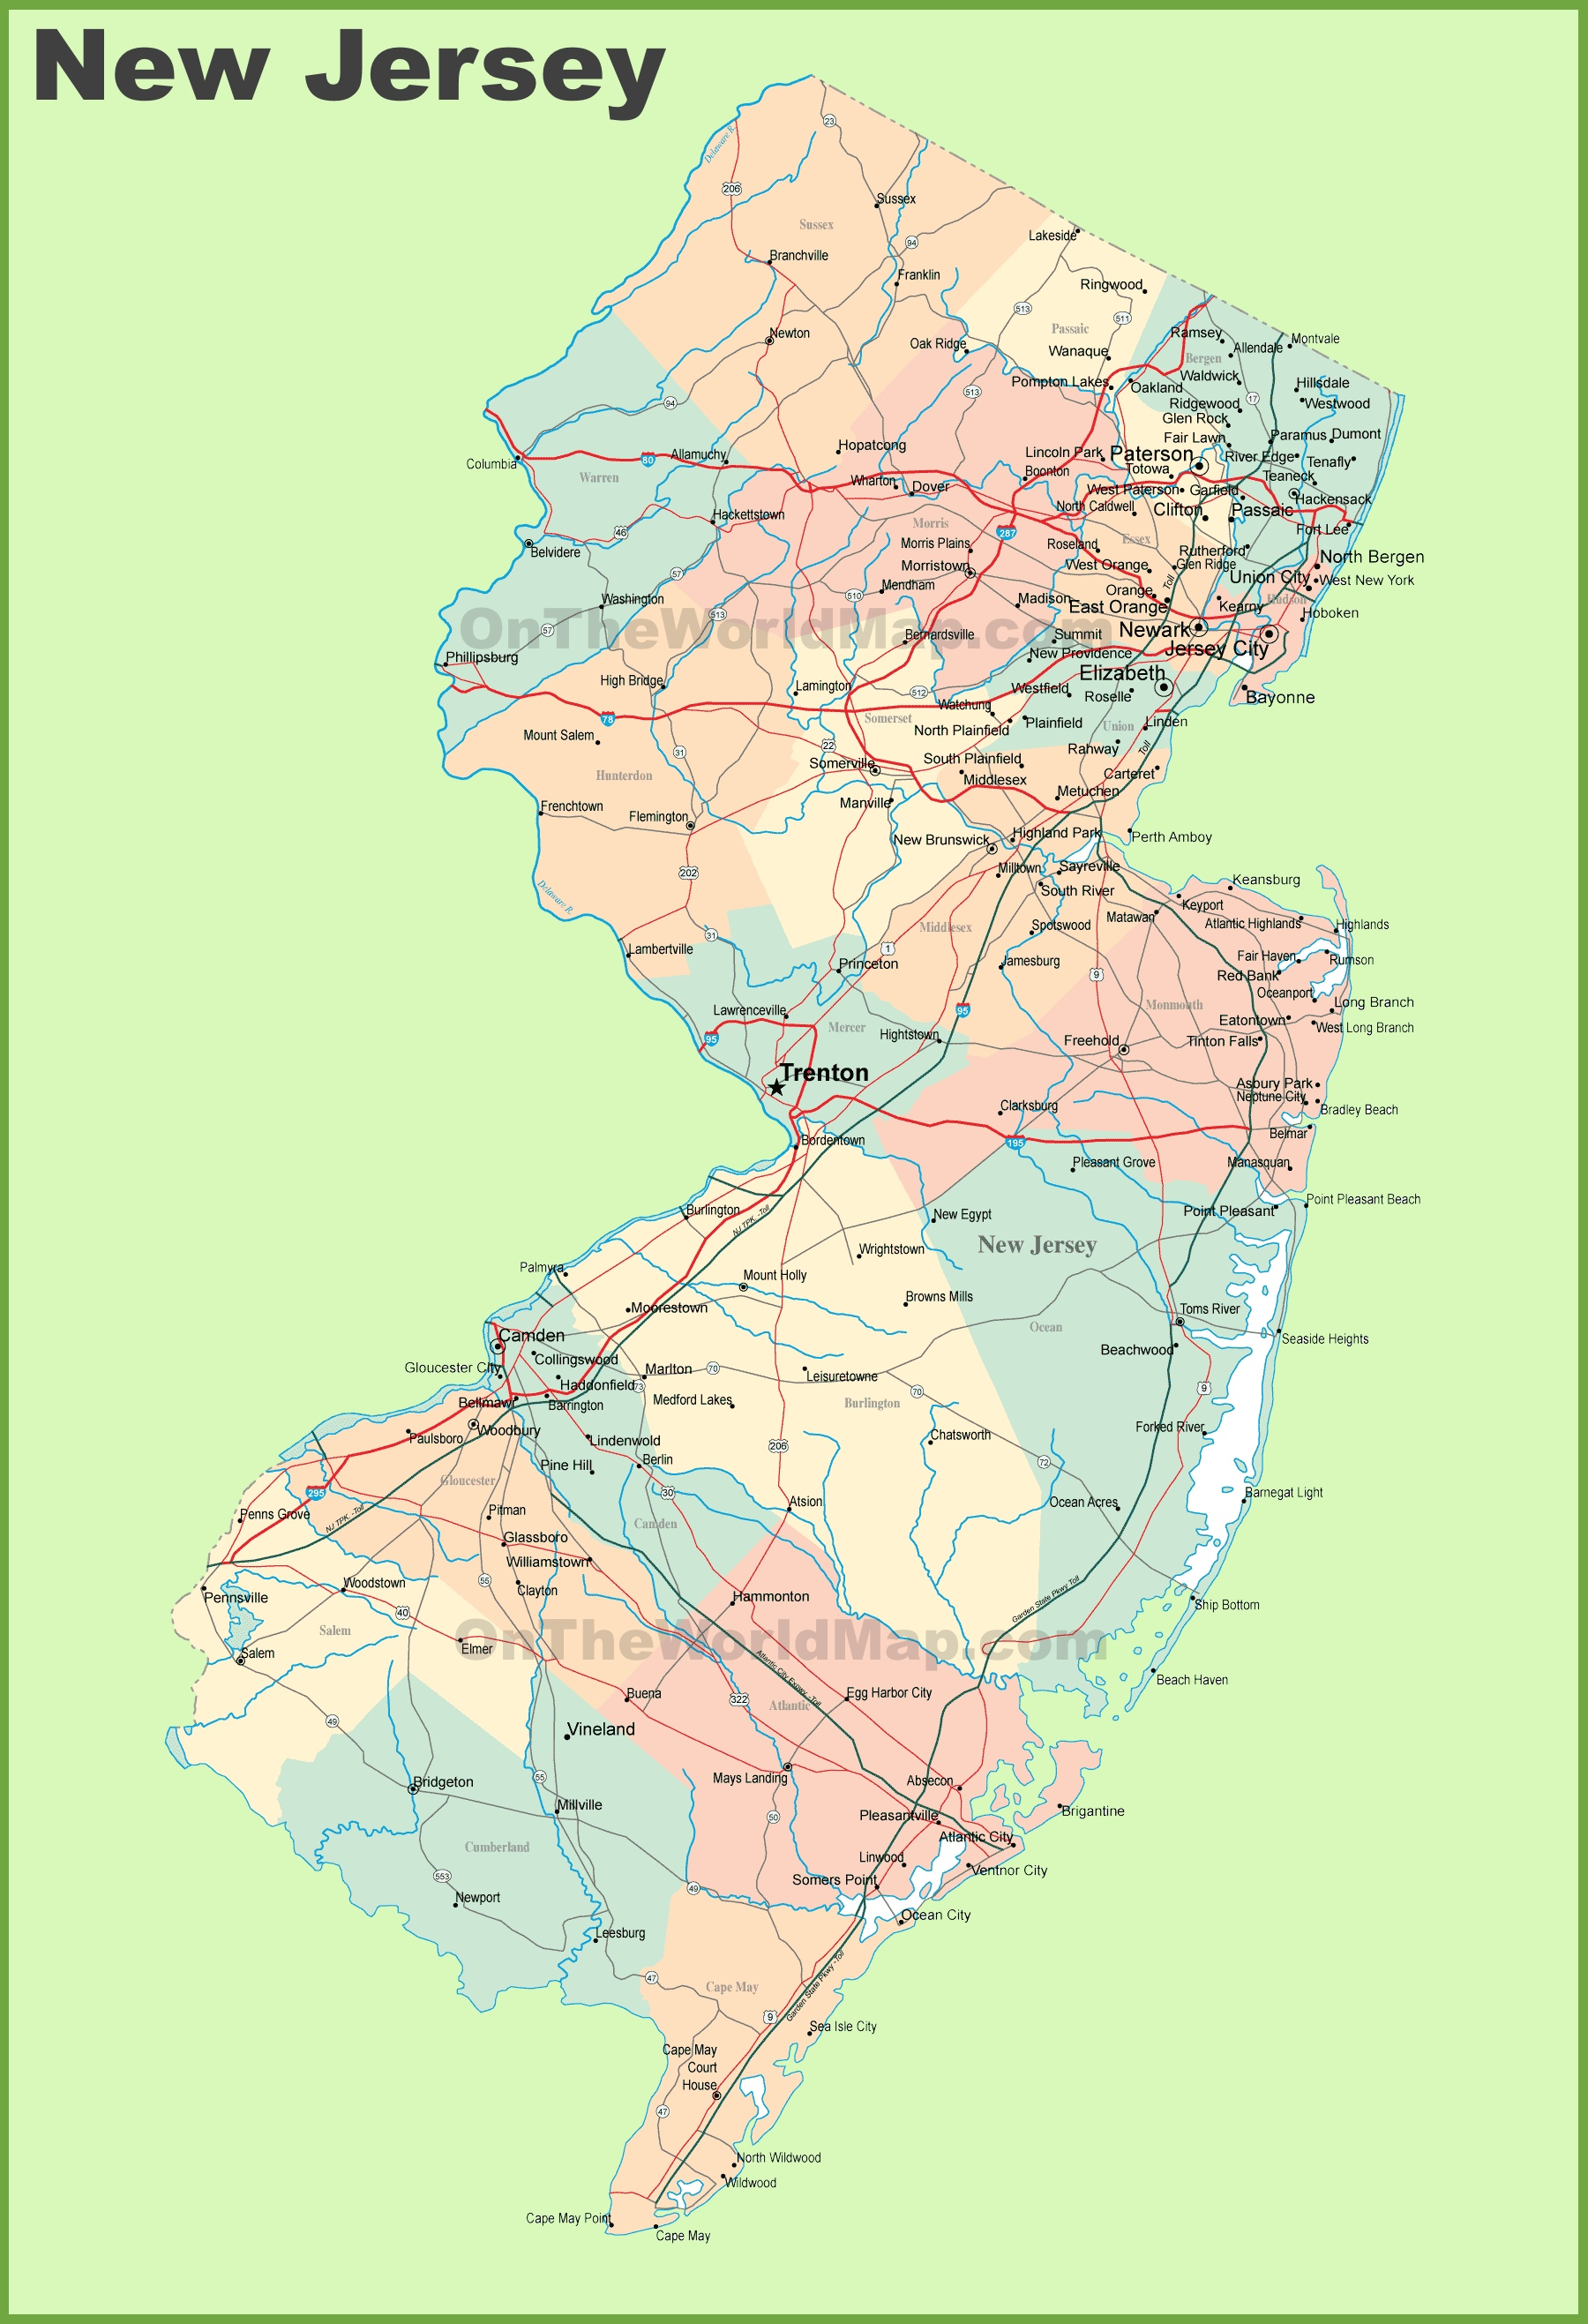 Pa State Map With Counties And Cities.Map Of Nj 7 2 Punchchris De